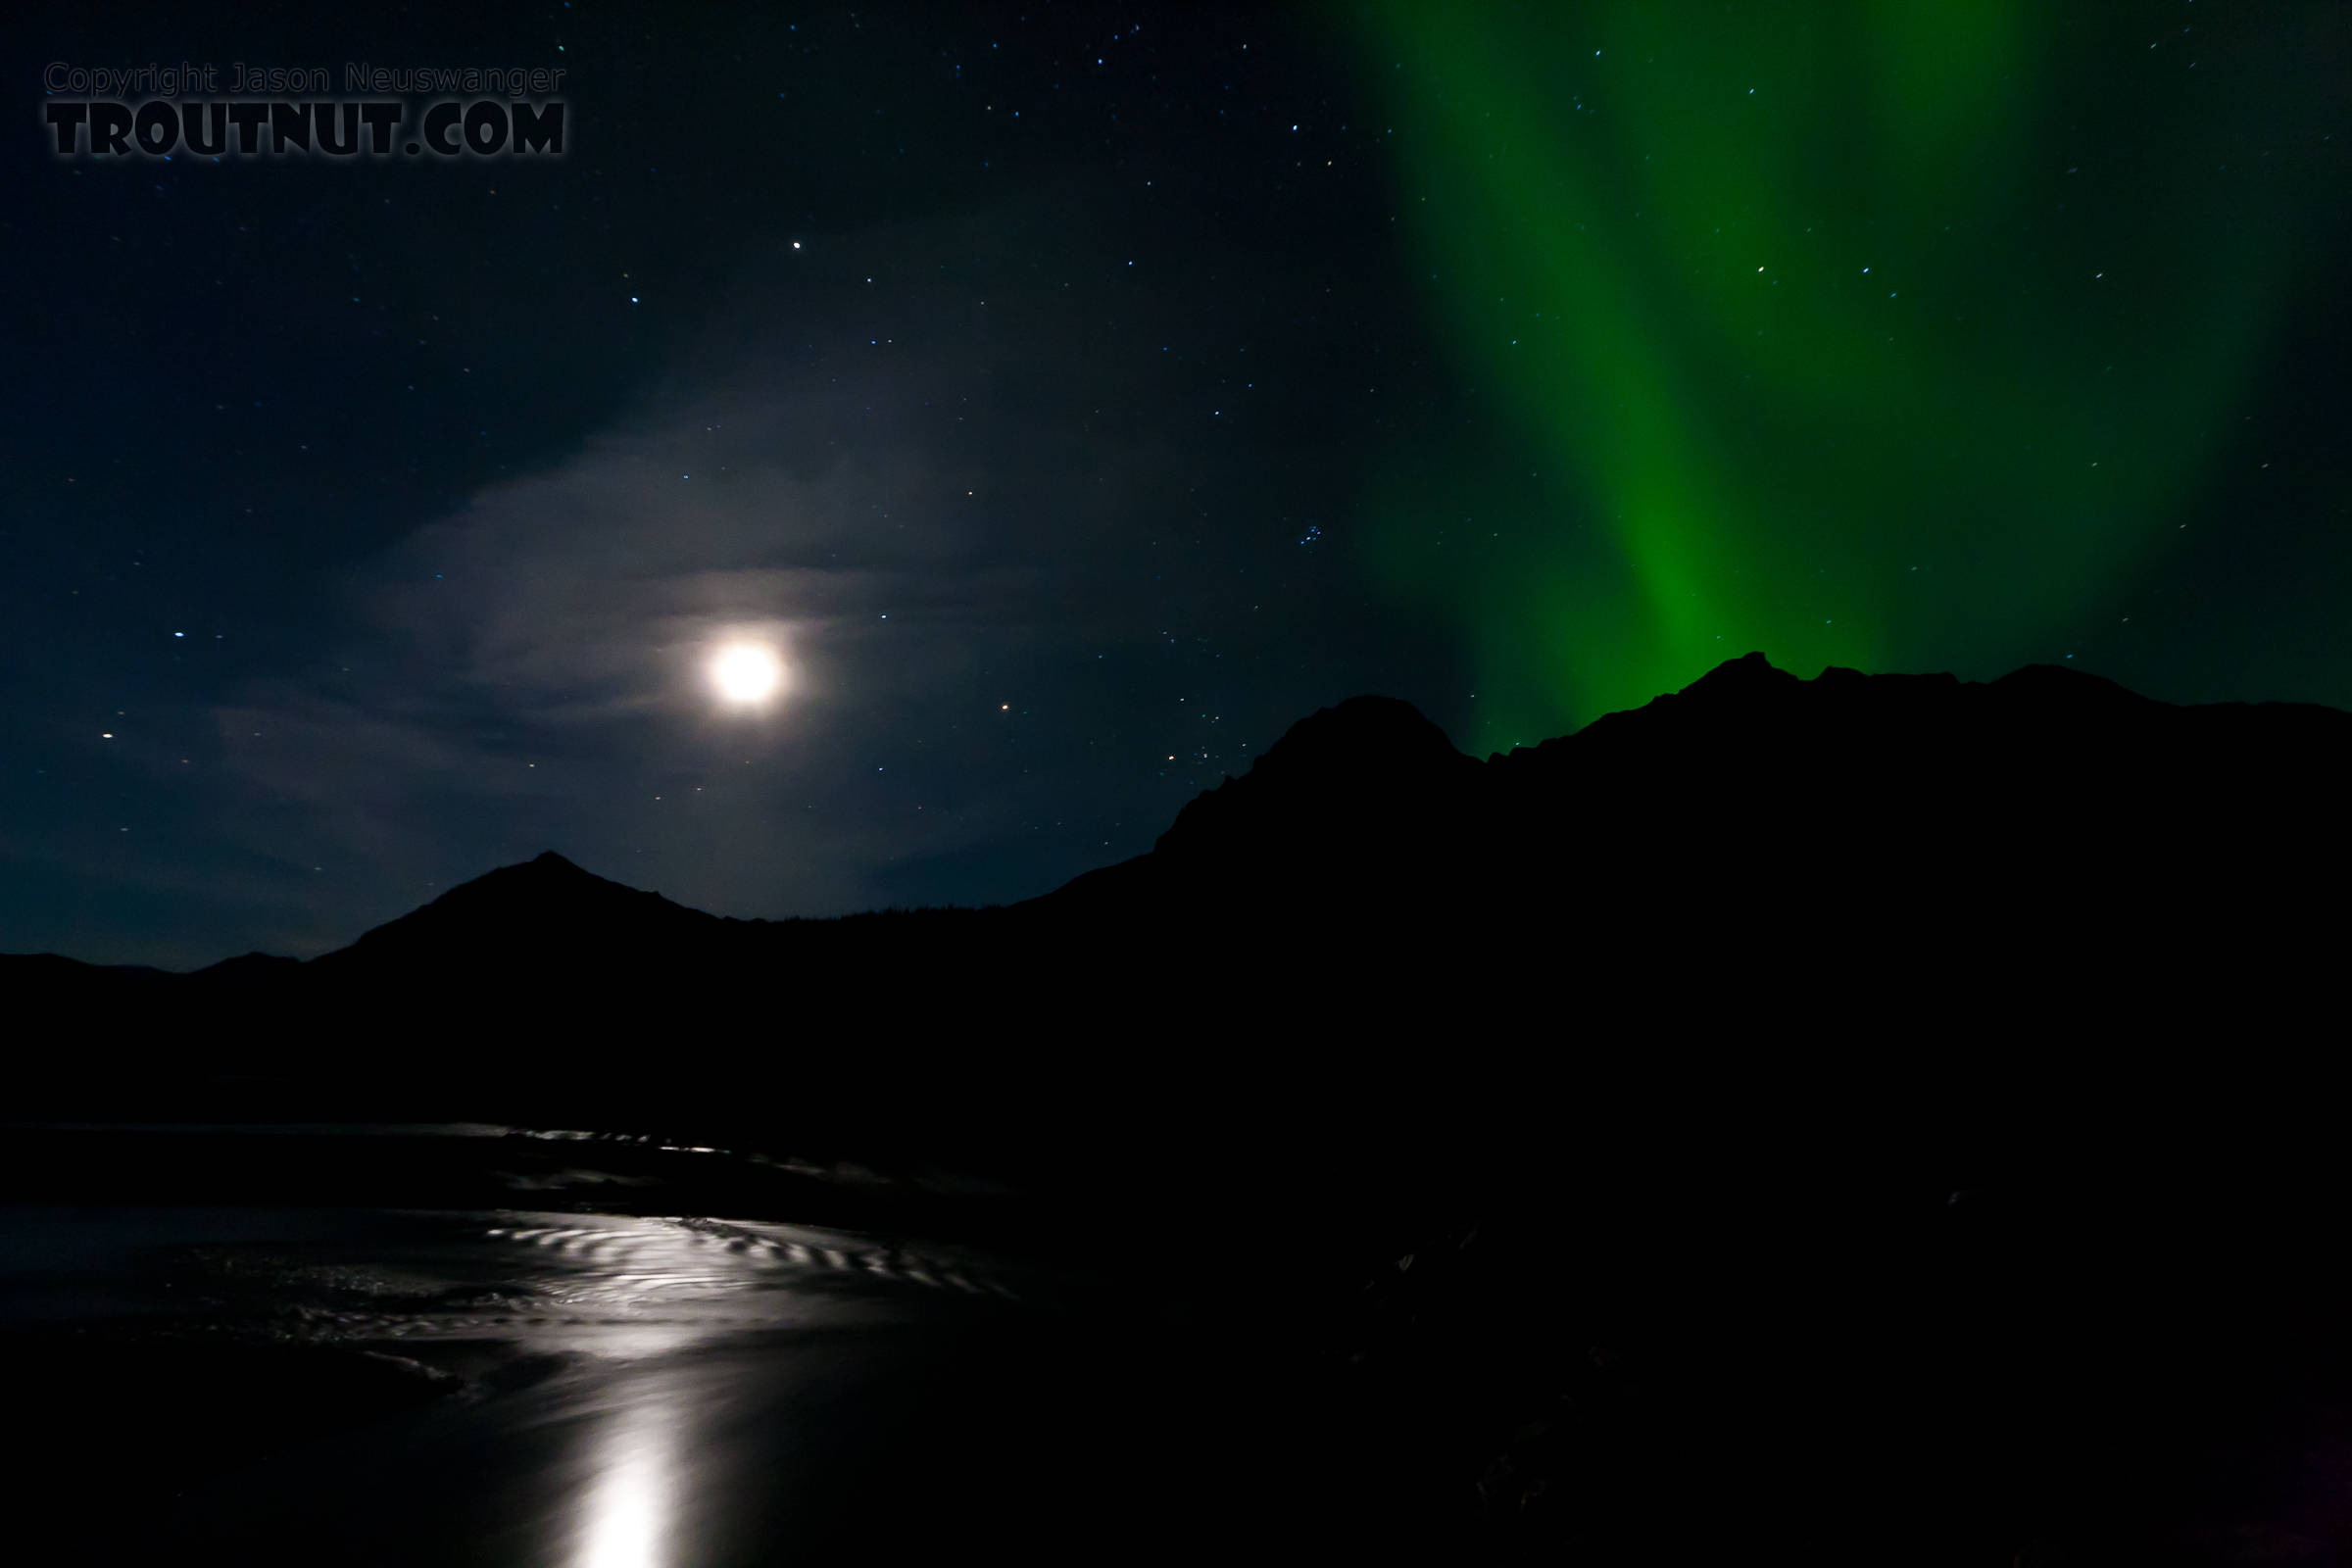 These were the first aurora I saw after moving to Alaska, rising over a mountain above the moonlit Middle Fork of the Koyukuk River in the Brooks Range above the Arctic Circle. From the Middle Fork of the Koyukuk River in Alaska.